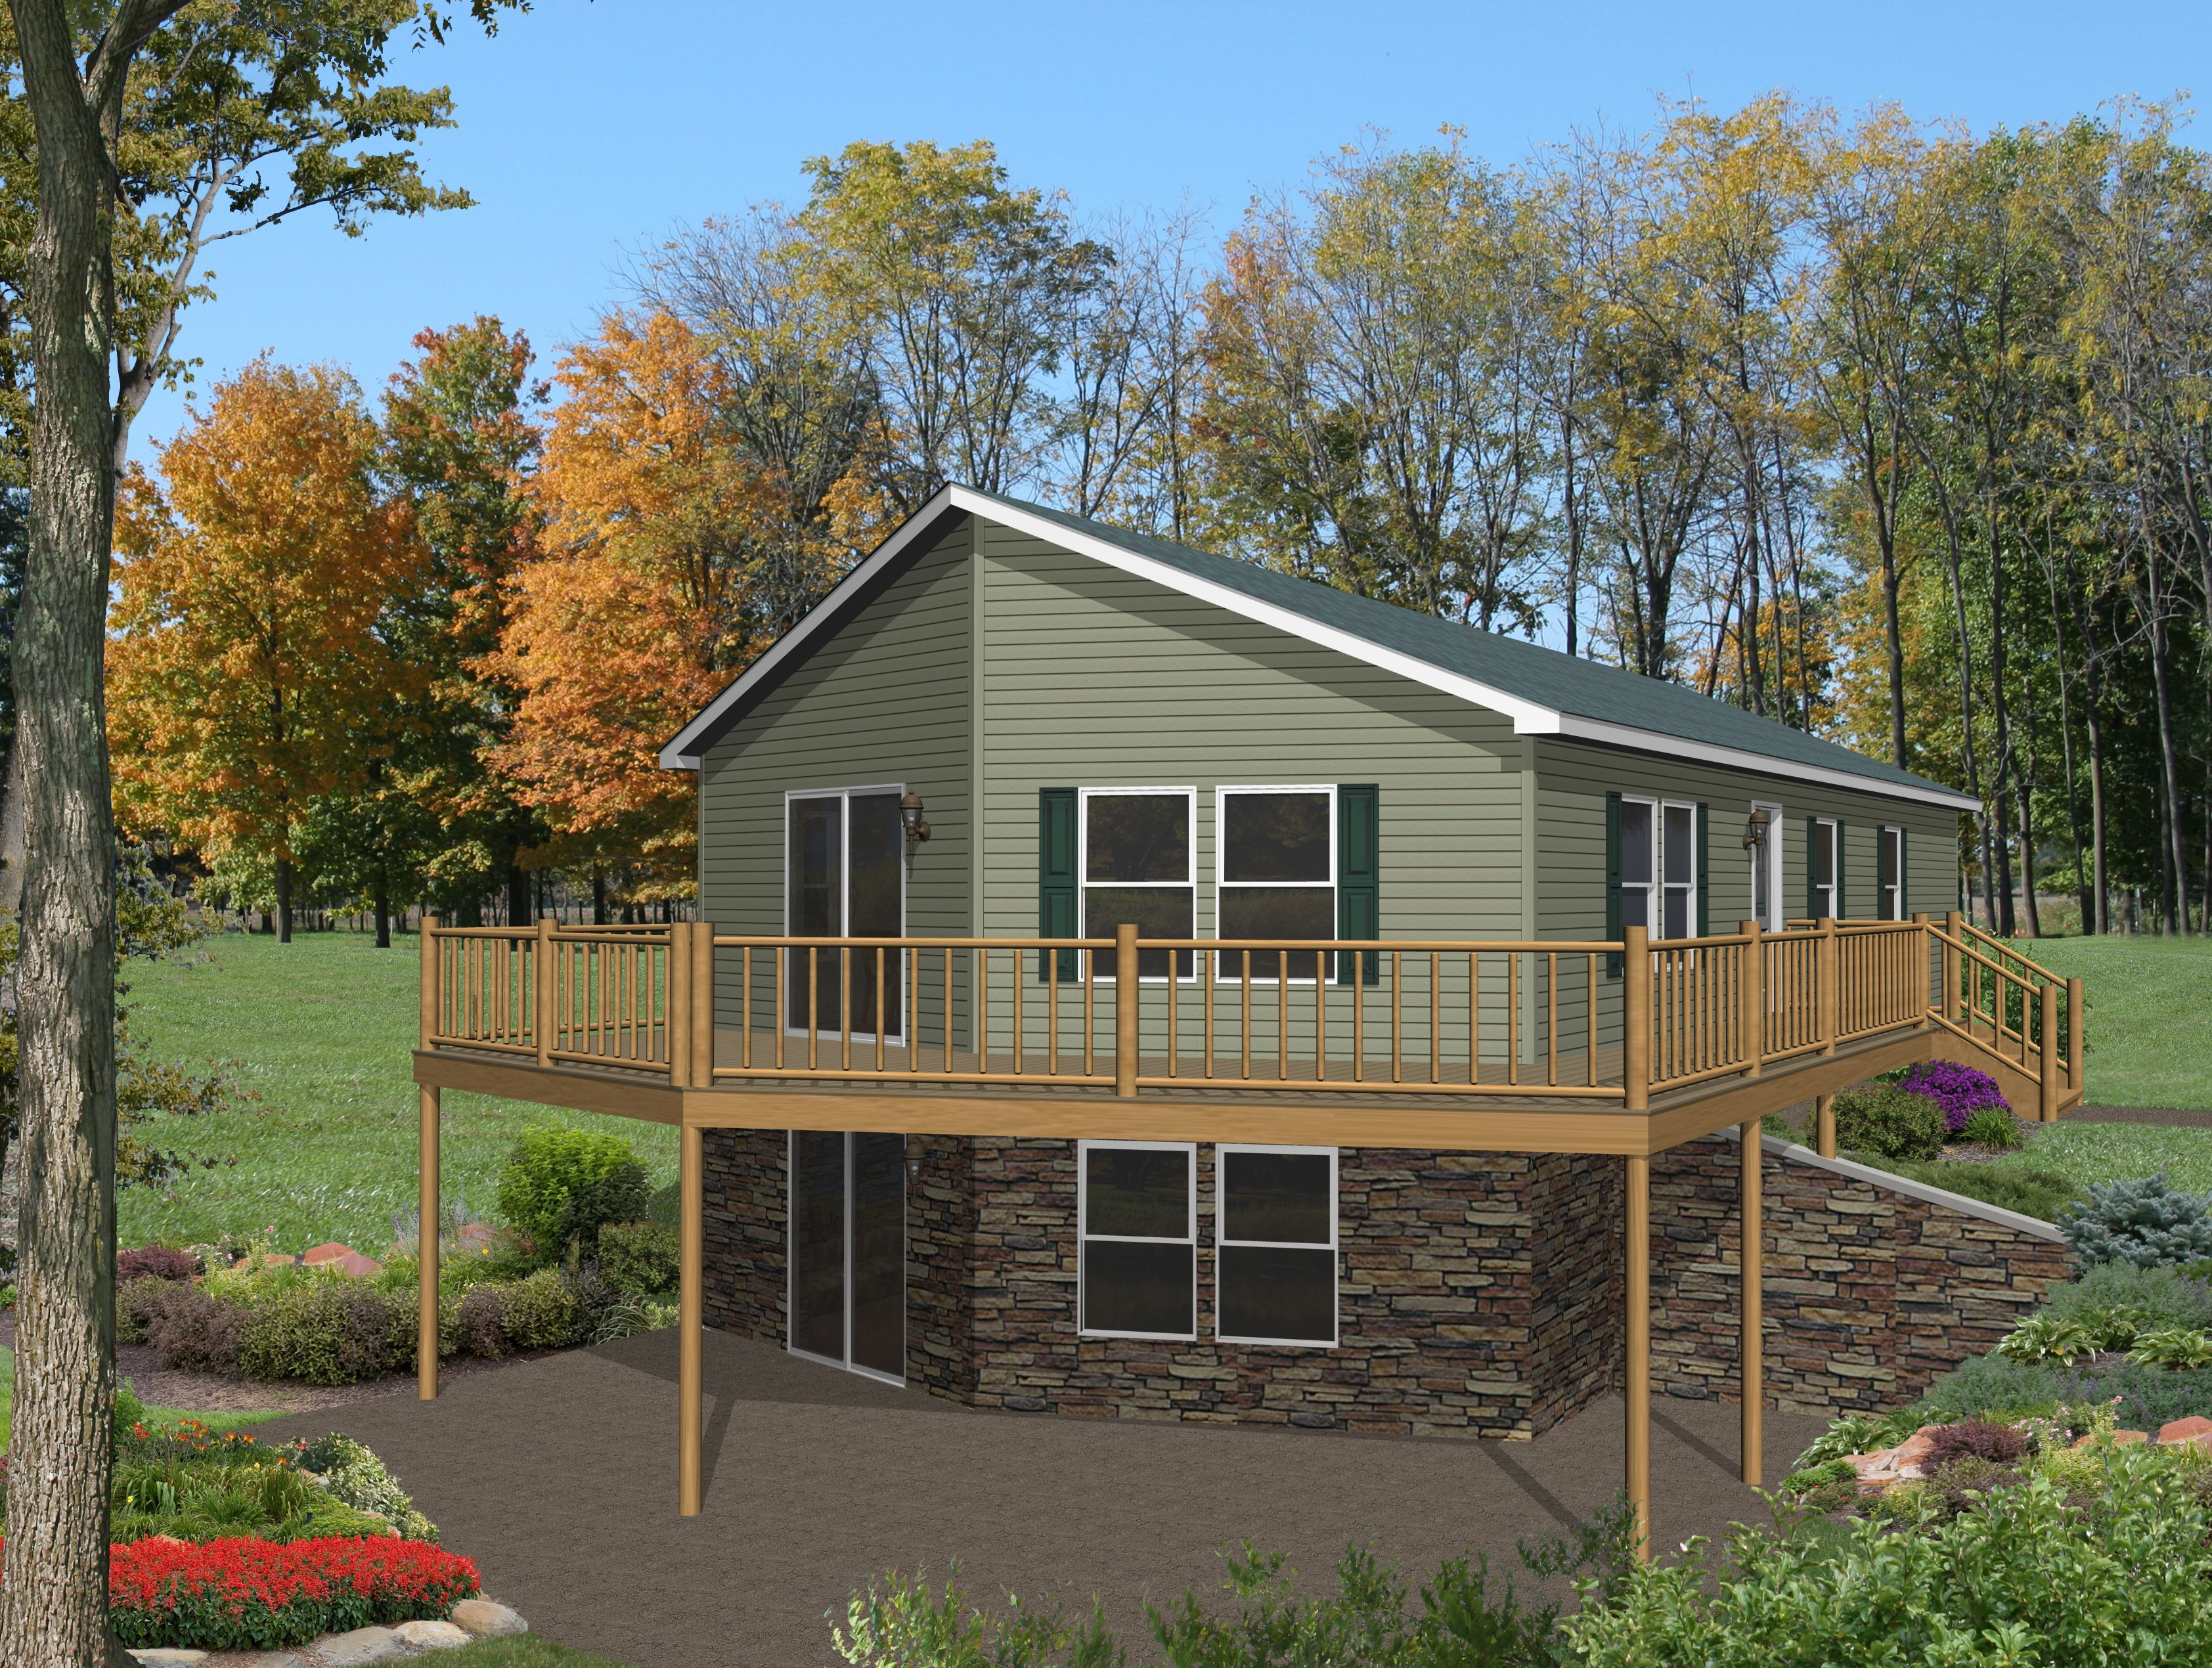 Appleton rg751a commodore homes of indiana grandville Ranch home plans with walkout basement